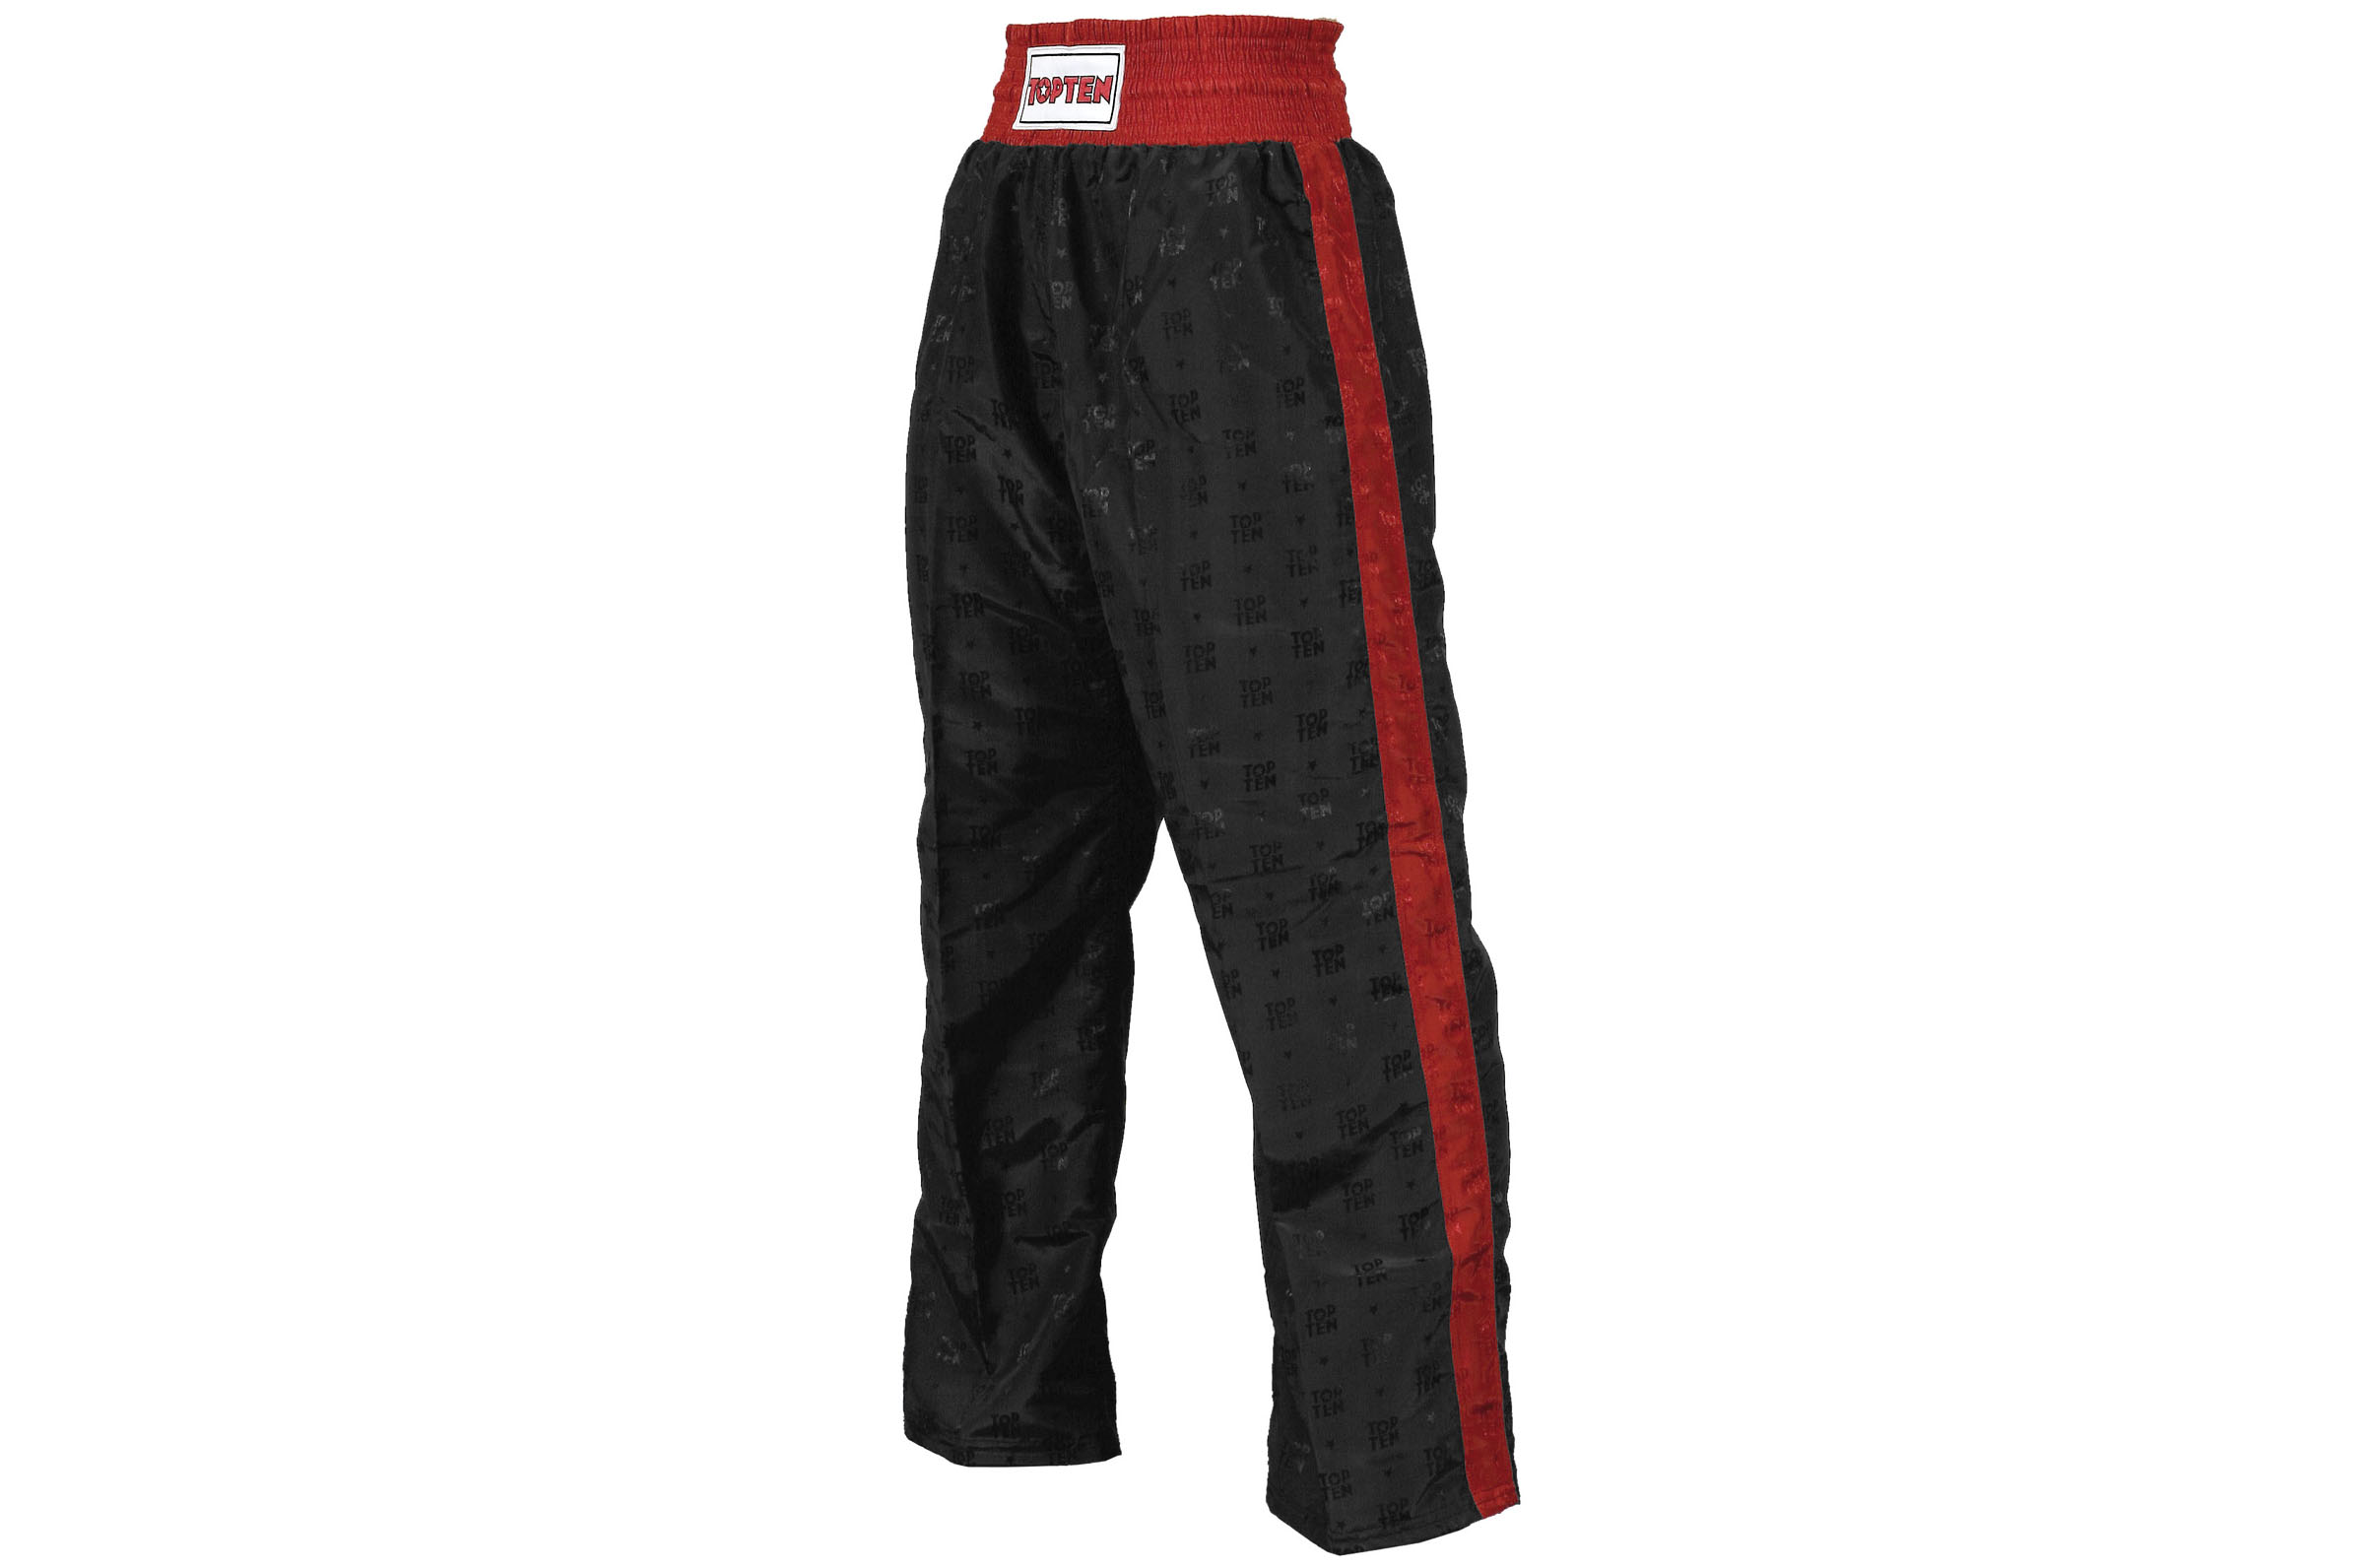 Full Contact Kick Boxing Satin Trousers Black//White Pants Bottoms Training